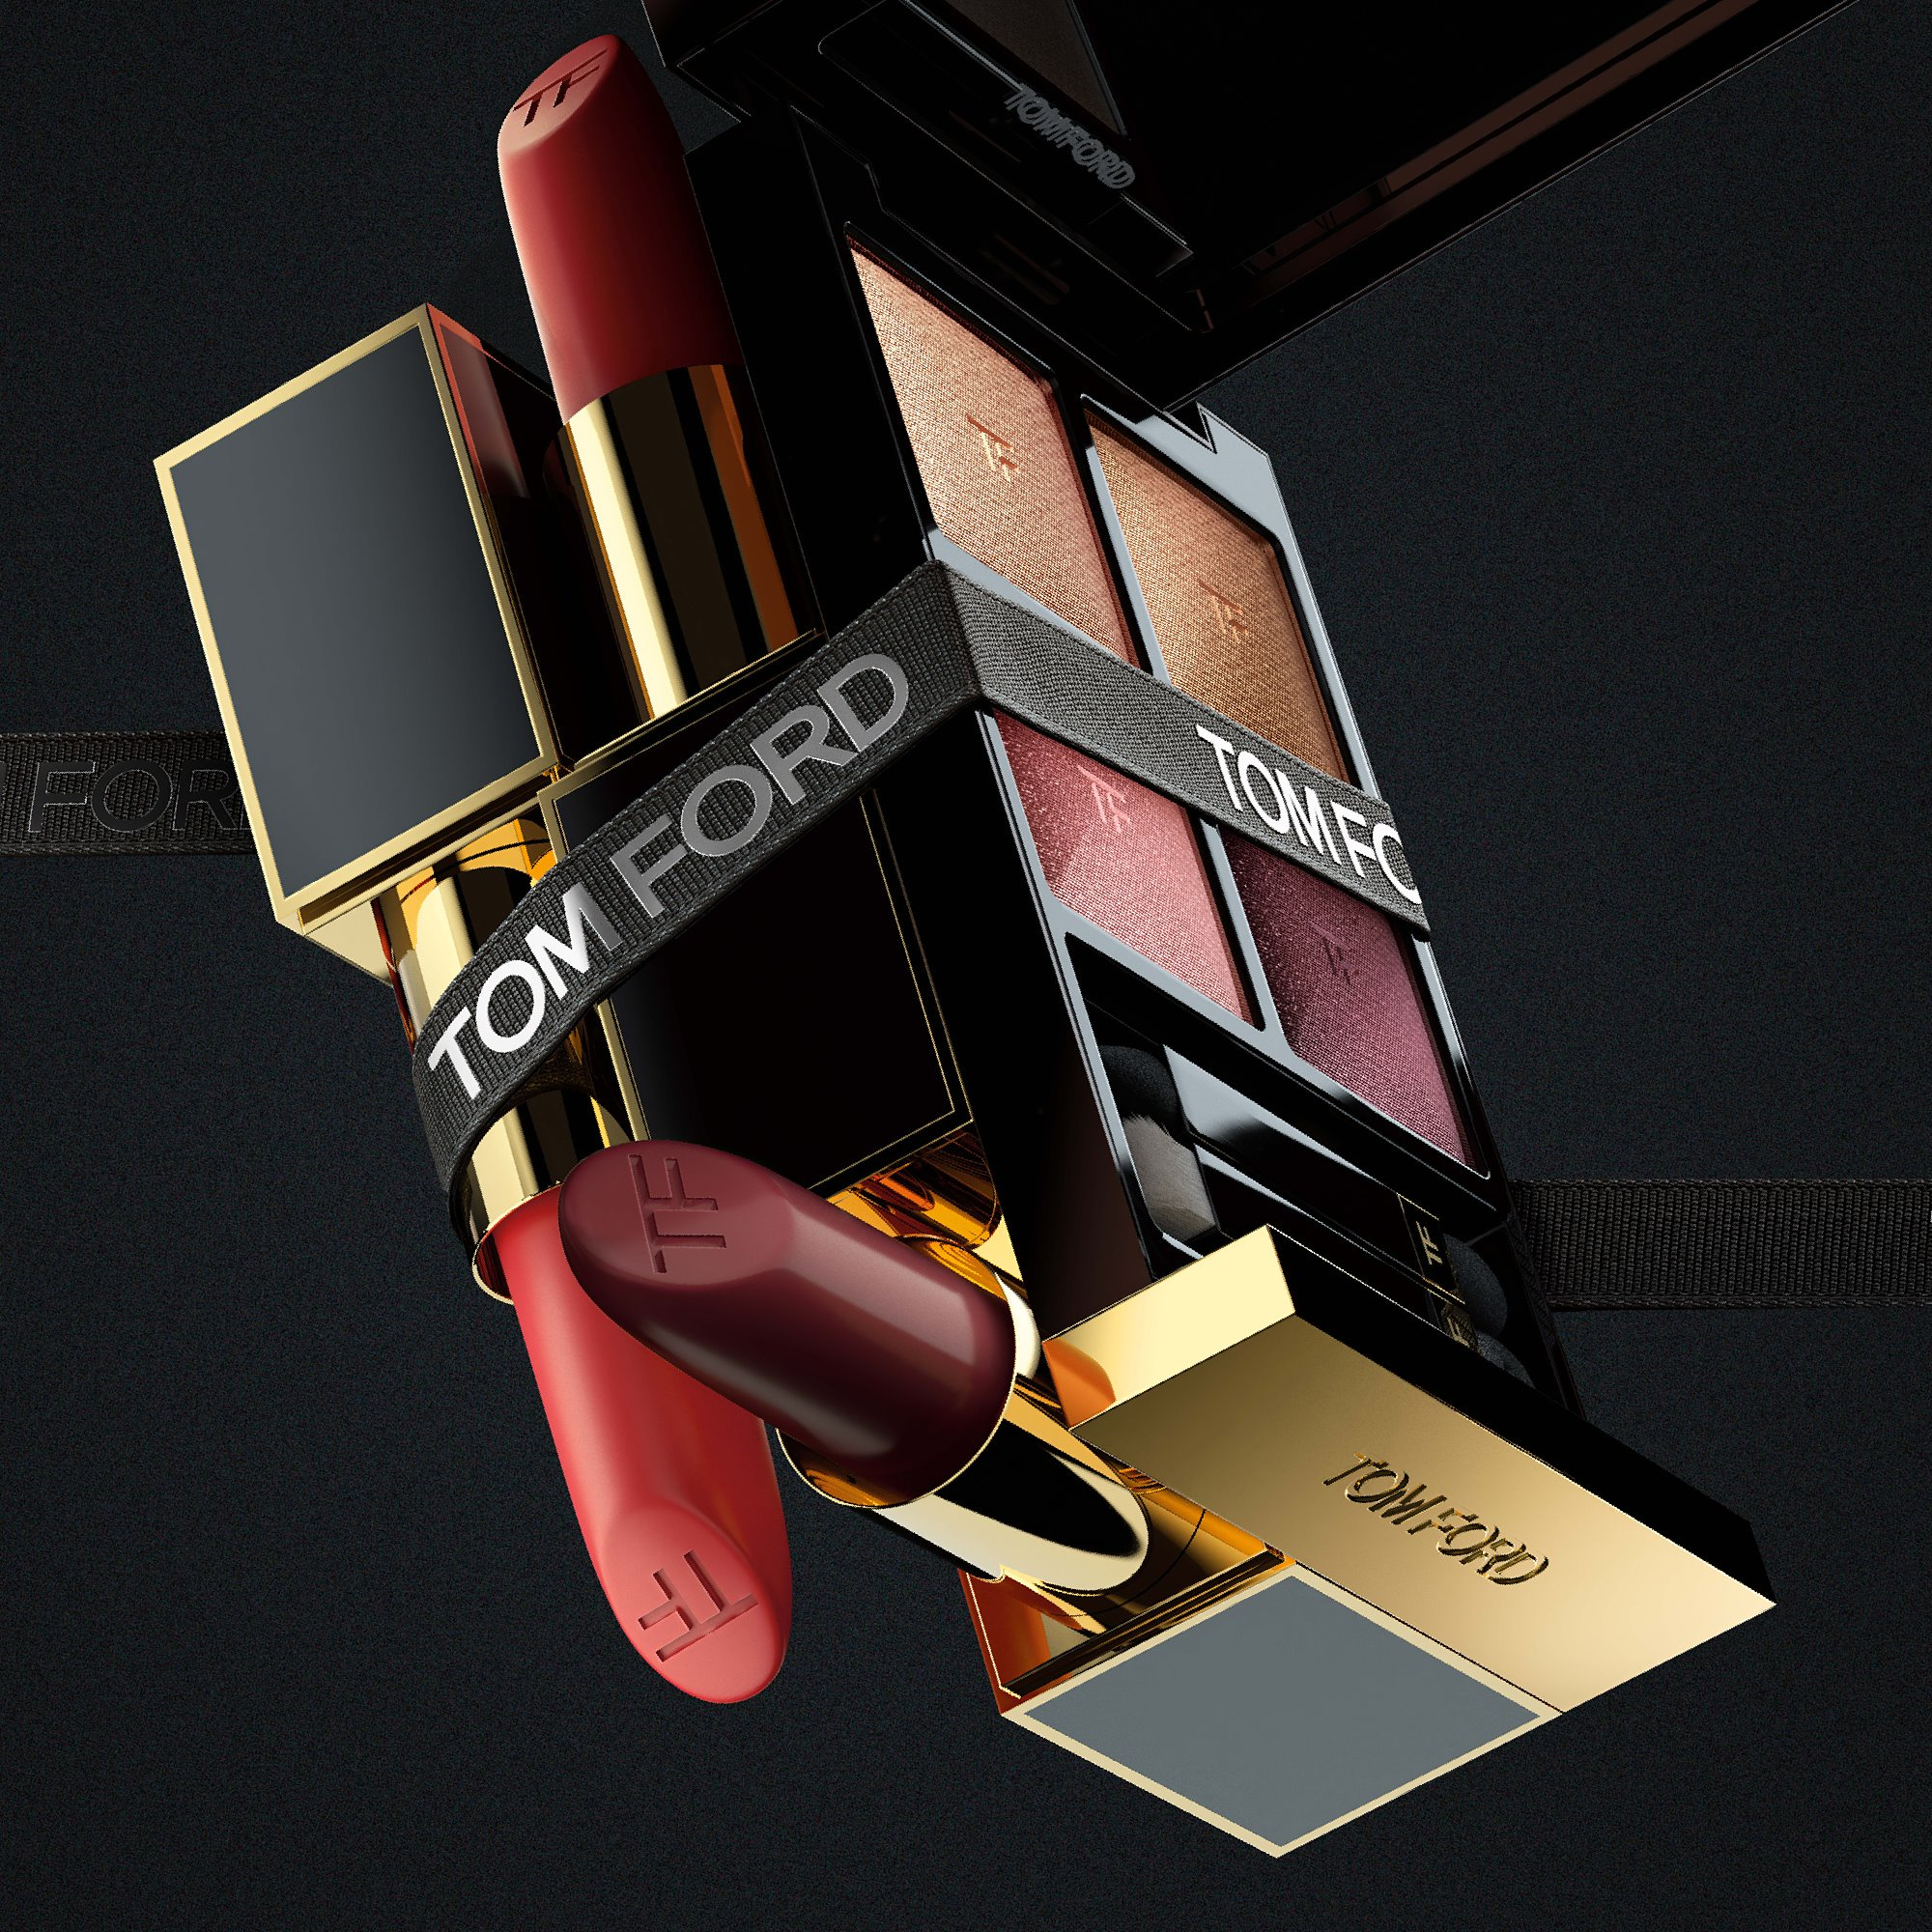 Tom Ford Gifts - Iconic Shades, Iconic Scents